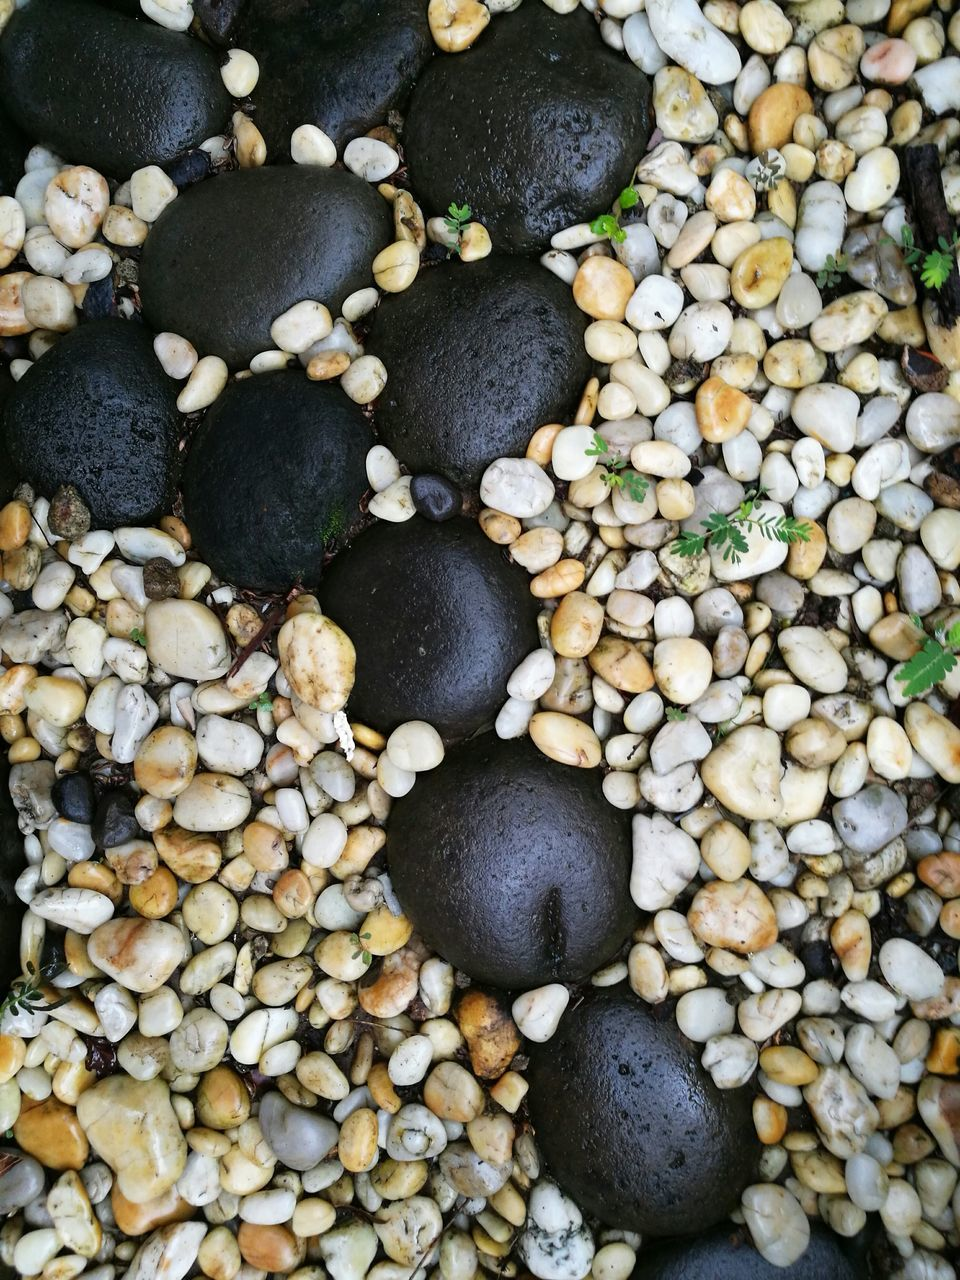 pebble, full frame, stone - object, large group of objects, nature, beach, abundance, shore, pebble beach, no people, rock - object, high angle view, close-up, backgrounds, beauty in nature, day, outdoors